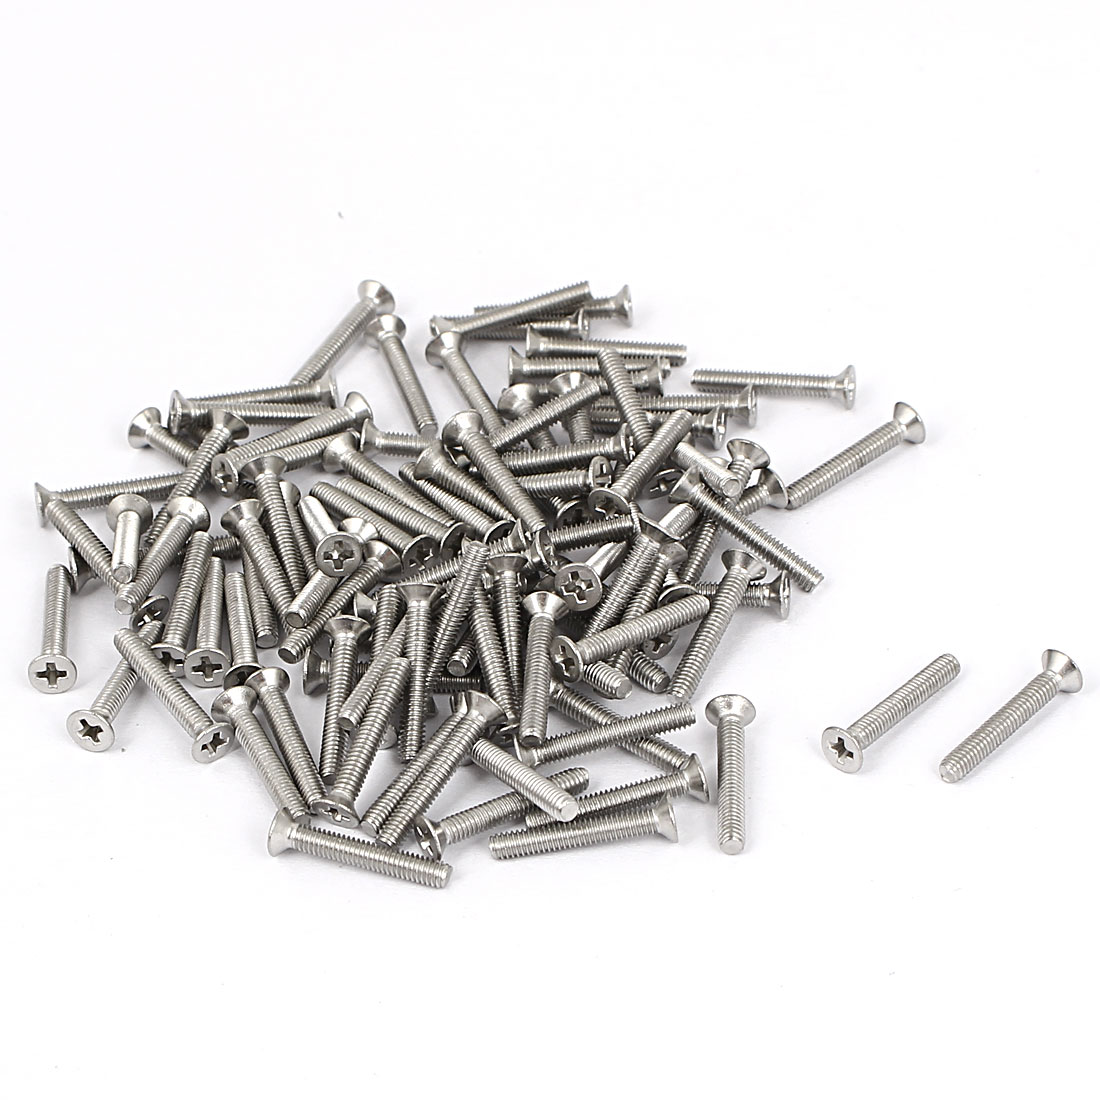 M2.5x16mm Stainless Steel Phillips Flat Countersunk Head Screws 100pcs